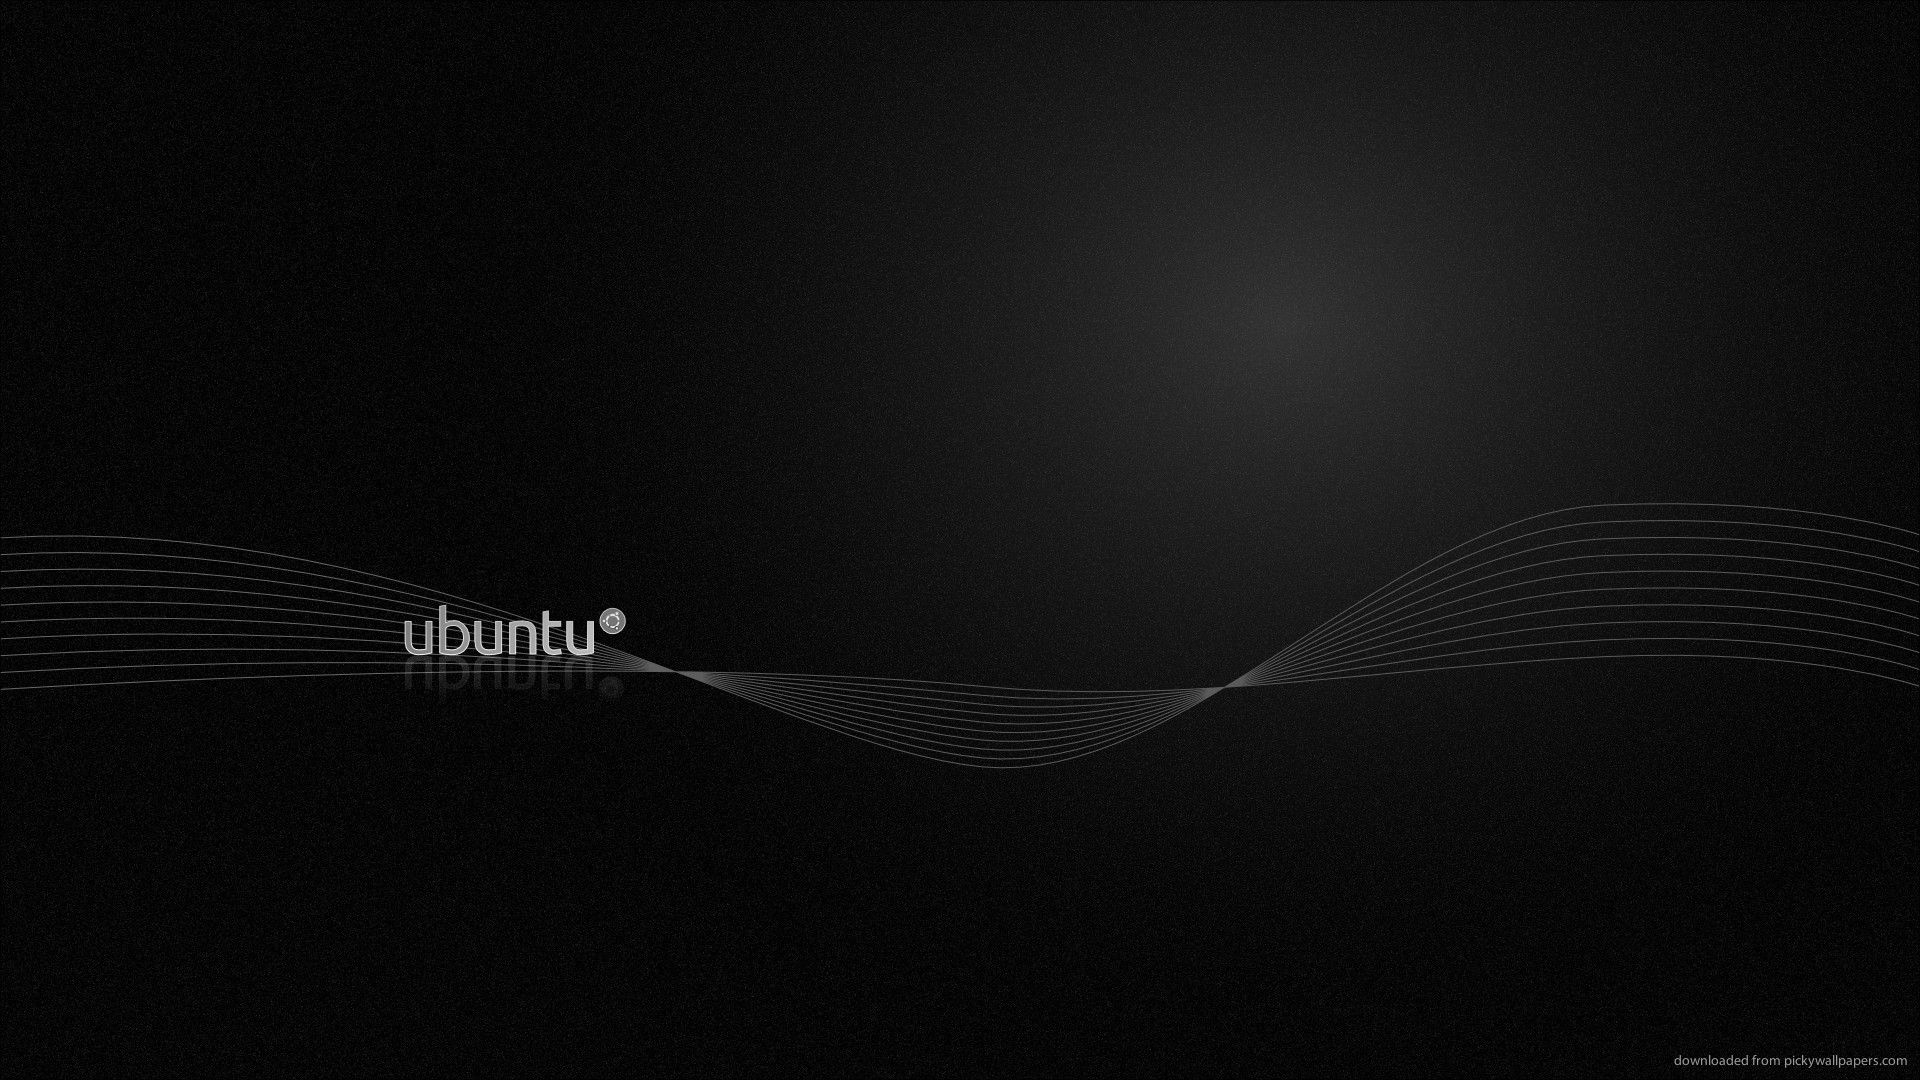 Ubuntu Wallpaper HD (73+ Images